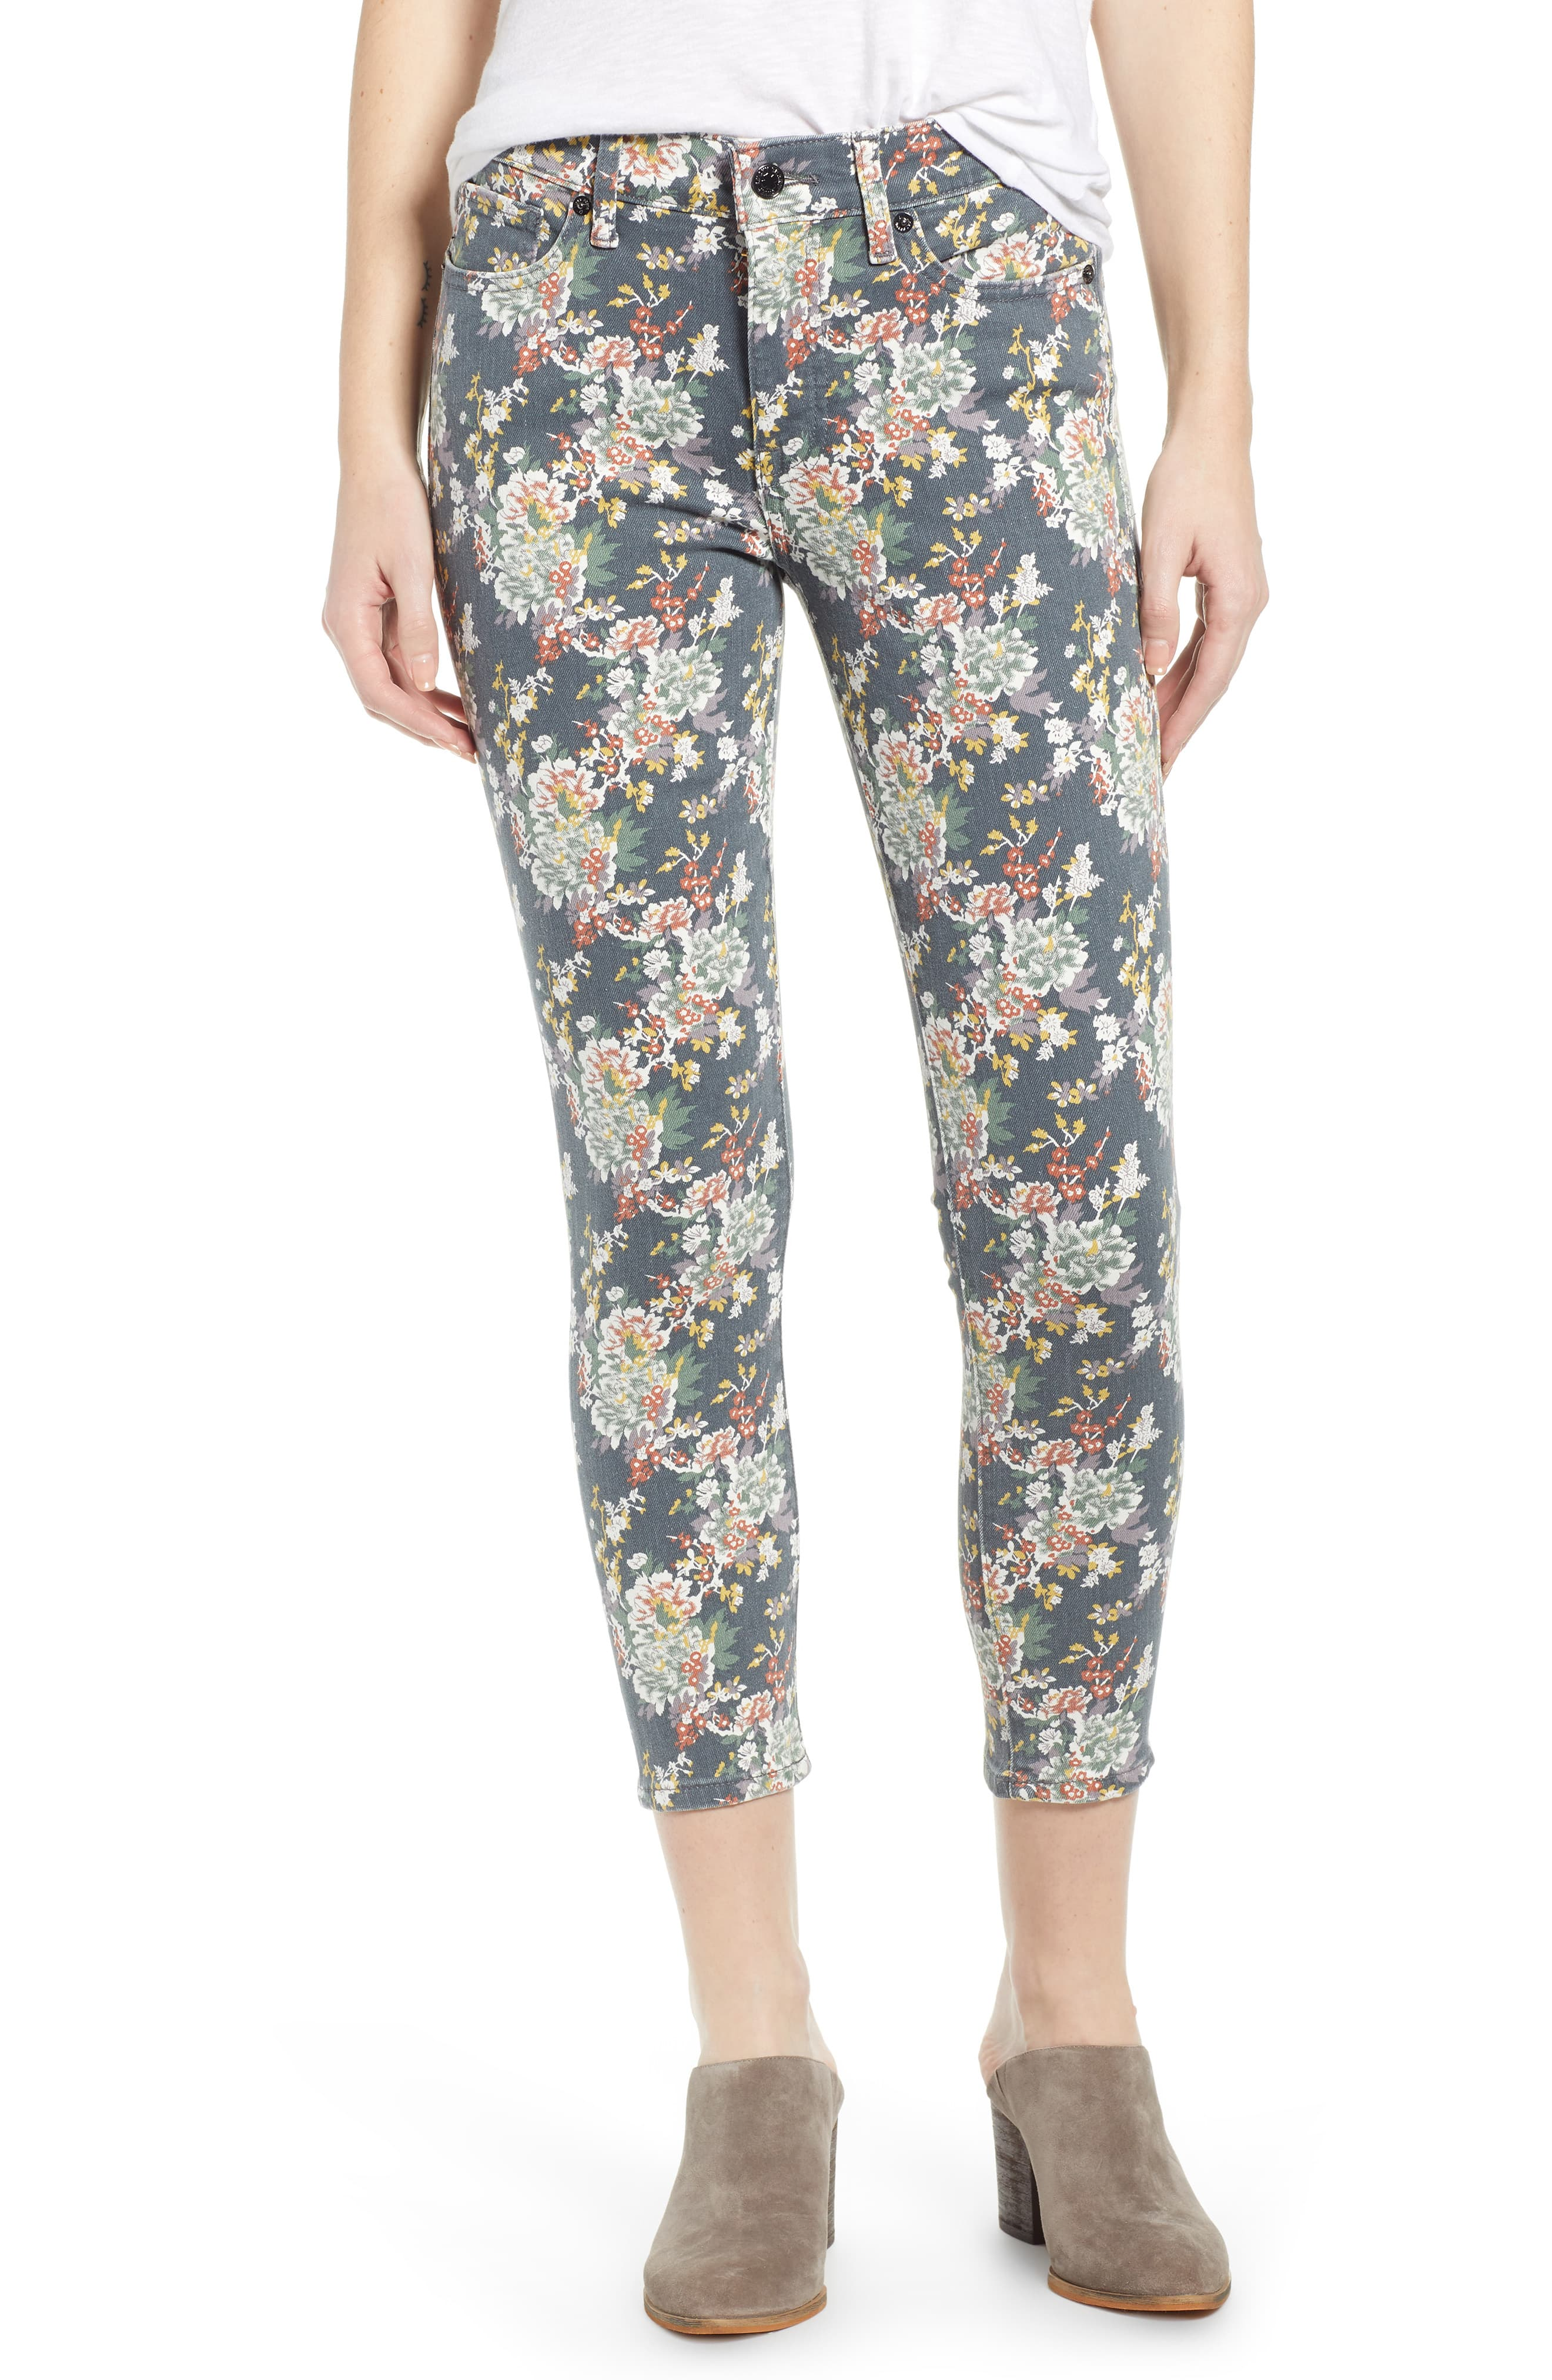 594f5e31c18d8 Women's Lucky Brand Ava Floral Crop Jeans, Size 28 - Grey | Products ...